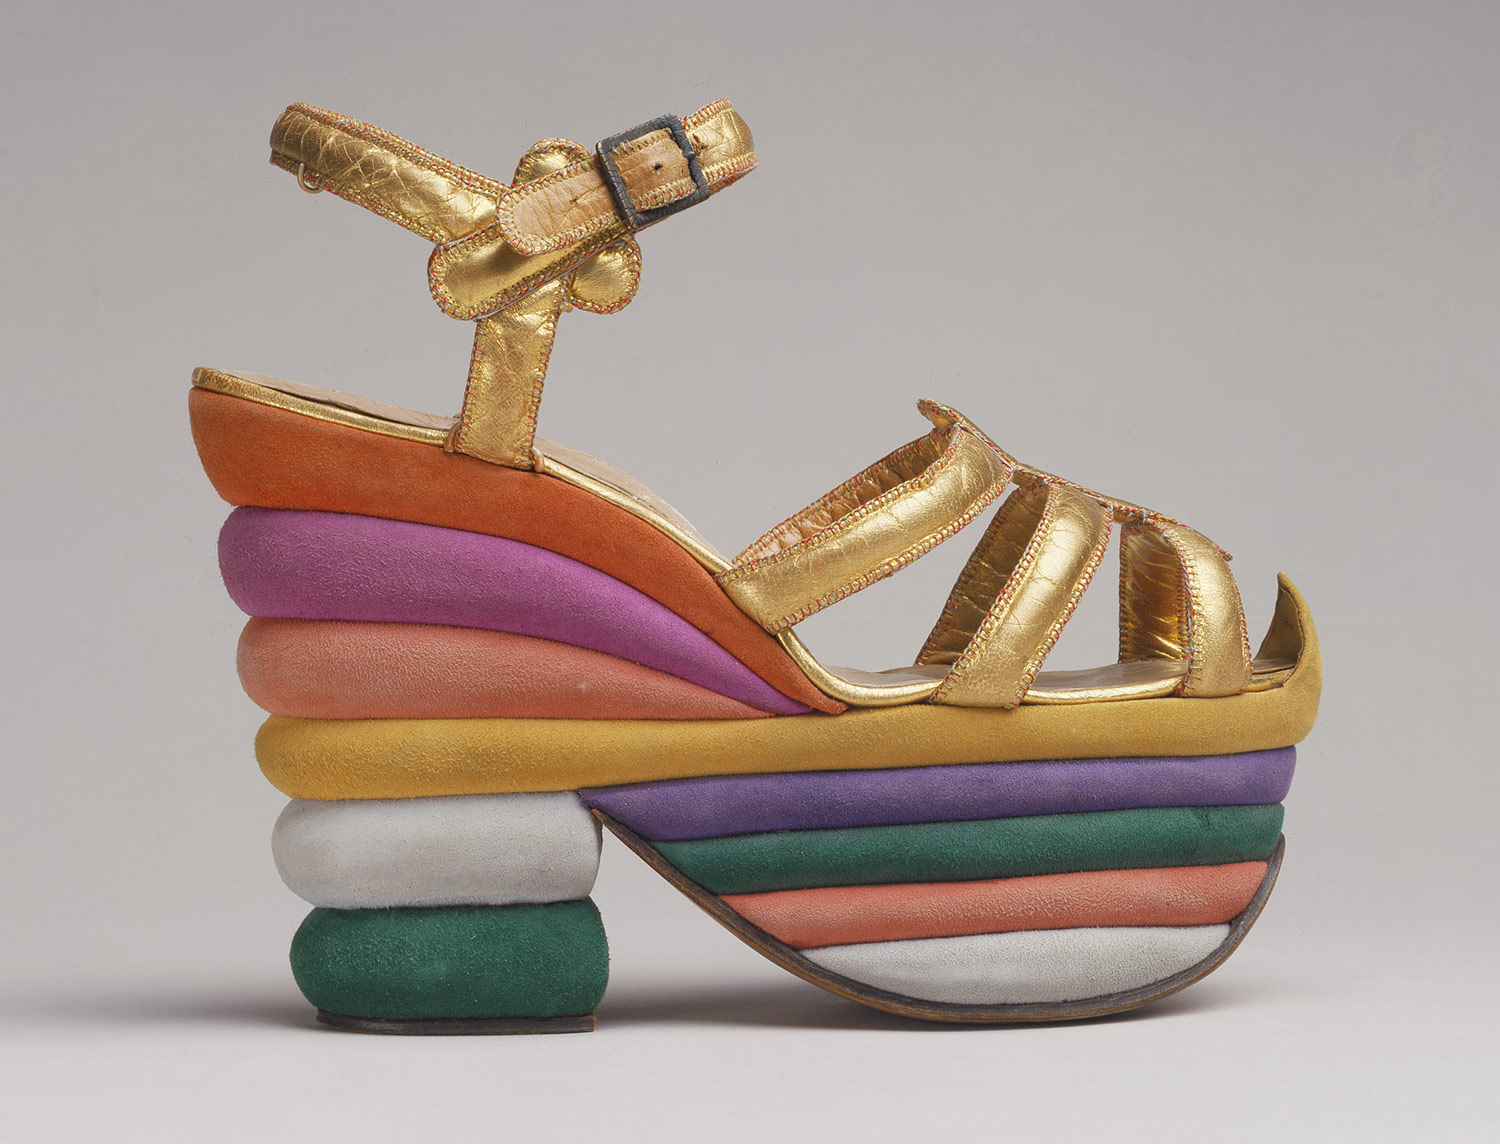 Ankle-strap sandal, 1938 Designed by Salvatore Ferragamo (Italian, 1898–1960) Leather, cork, metal